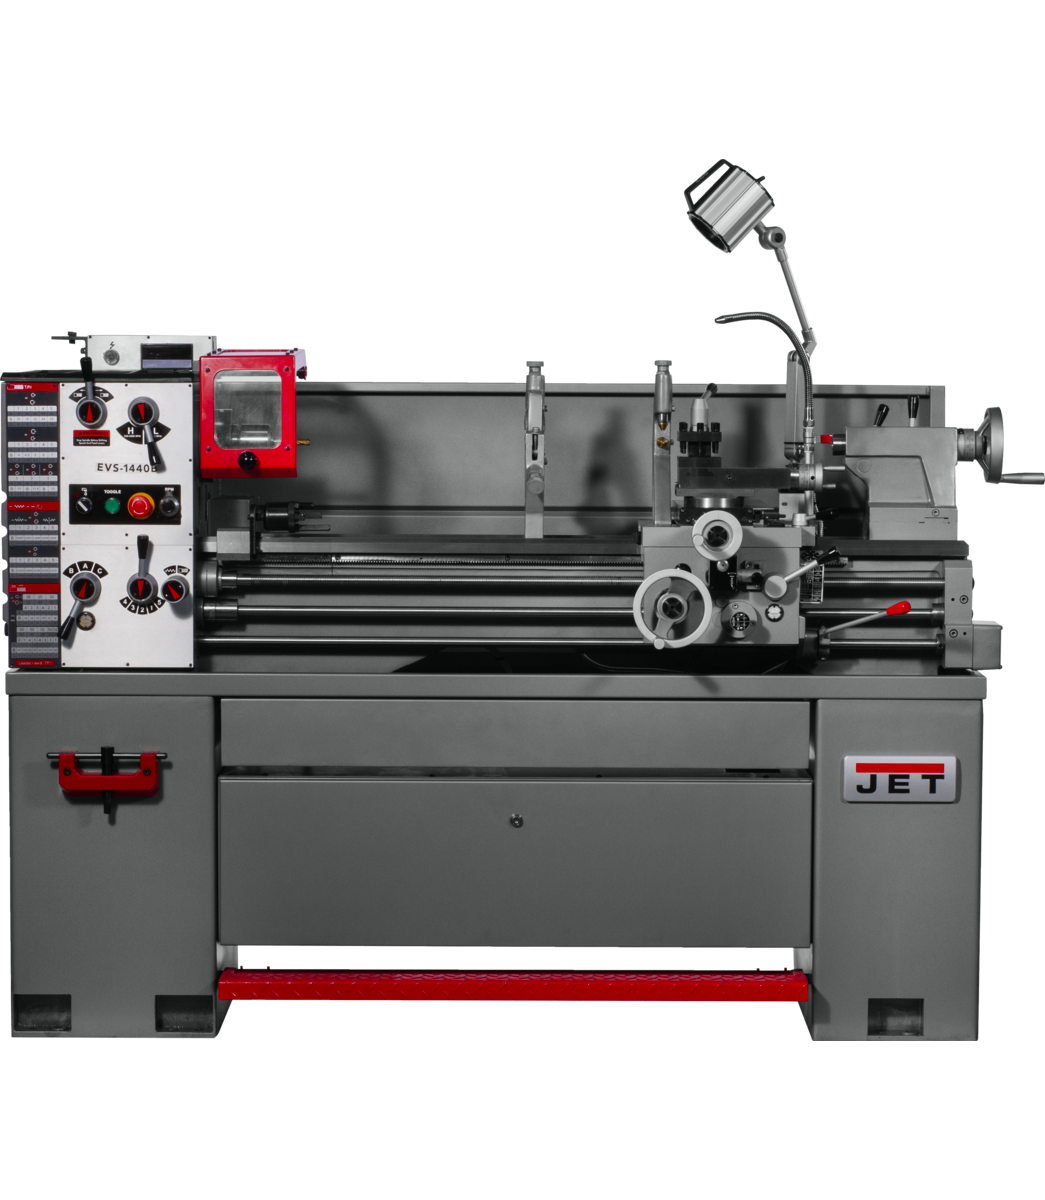 EVS-1440 Electronic Variable Speed lathe with Newall DP700 DRO and Taper Attachment, 3HP